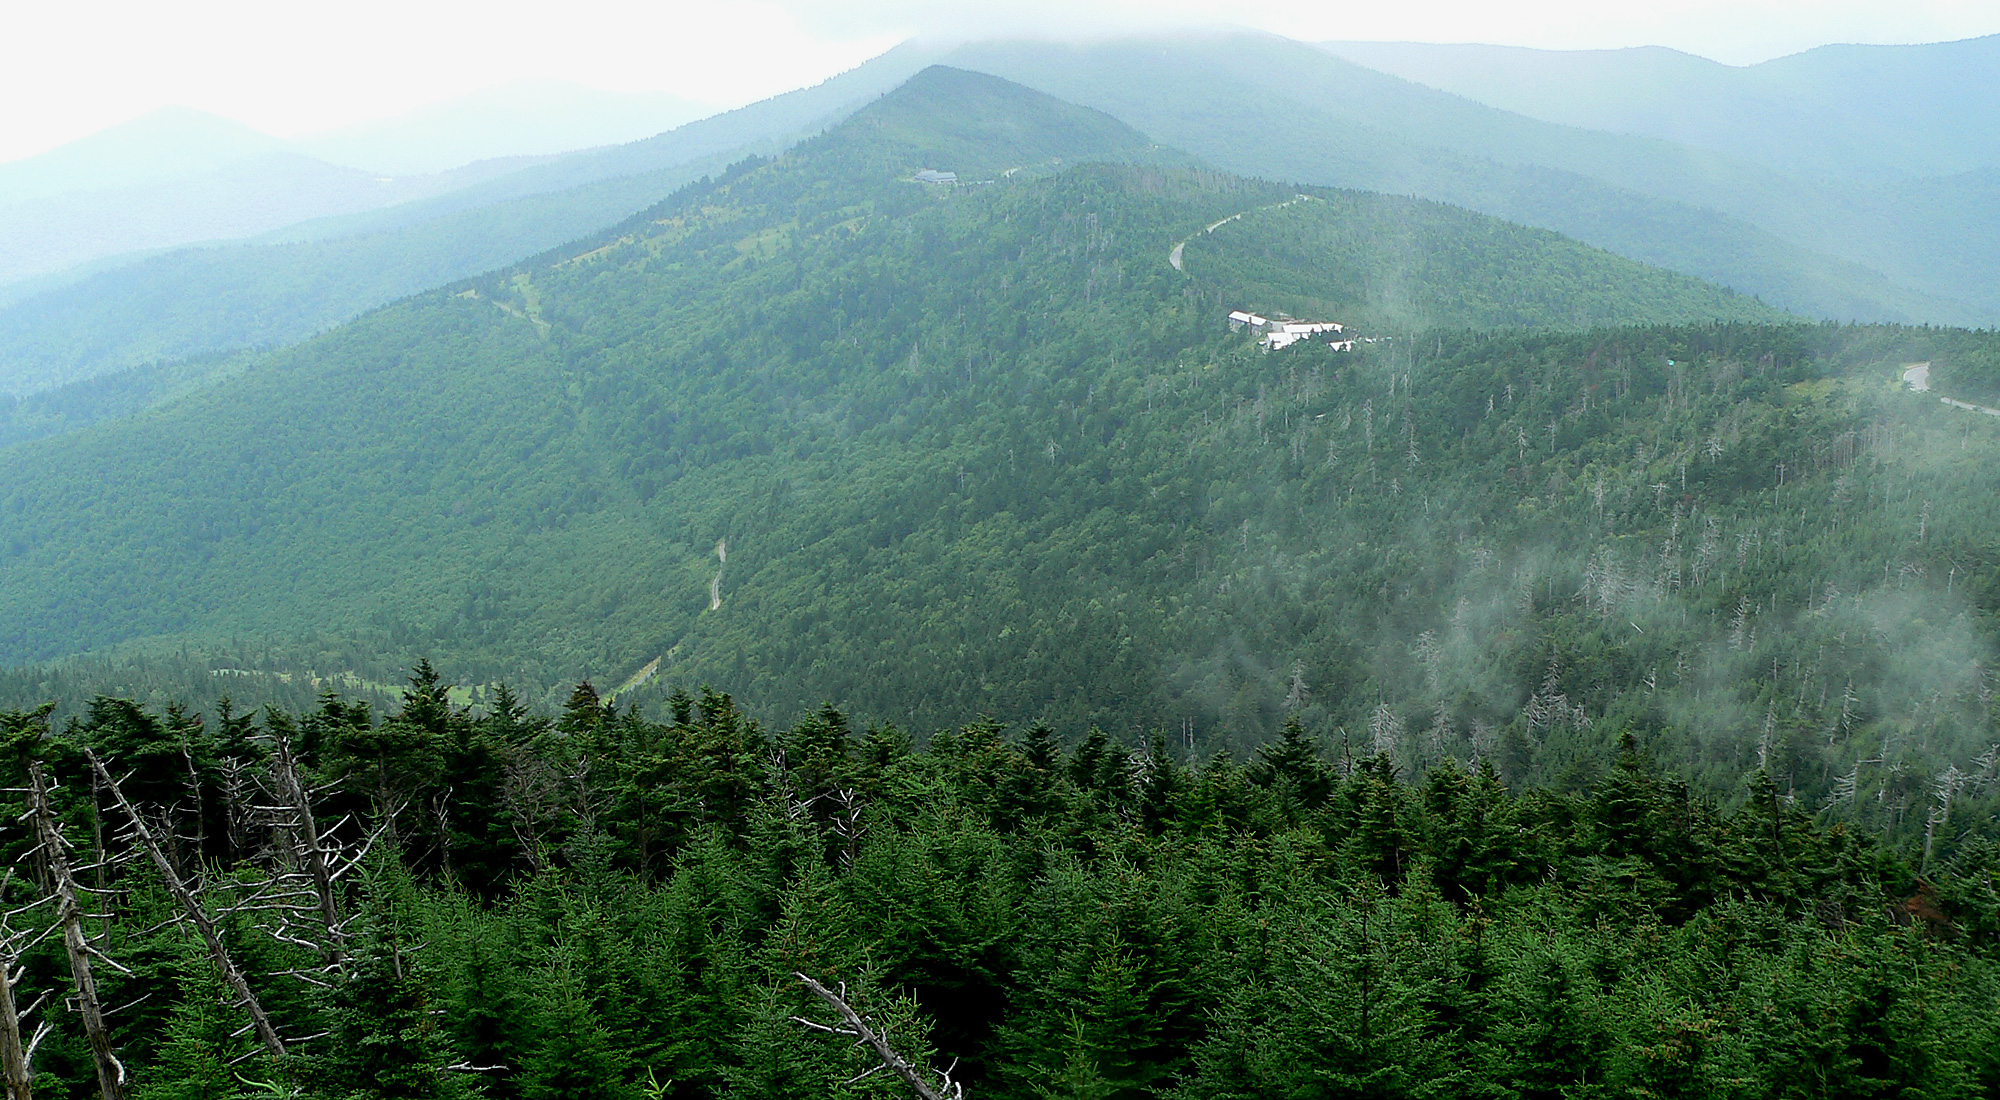 mount mitchell cougars dating site Find your park find a park on the map  mount mitchell's dramatic summit is the highest point east of the mississippi at 6,684 feet and was inspiration for.